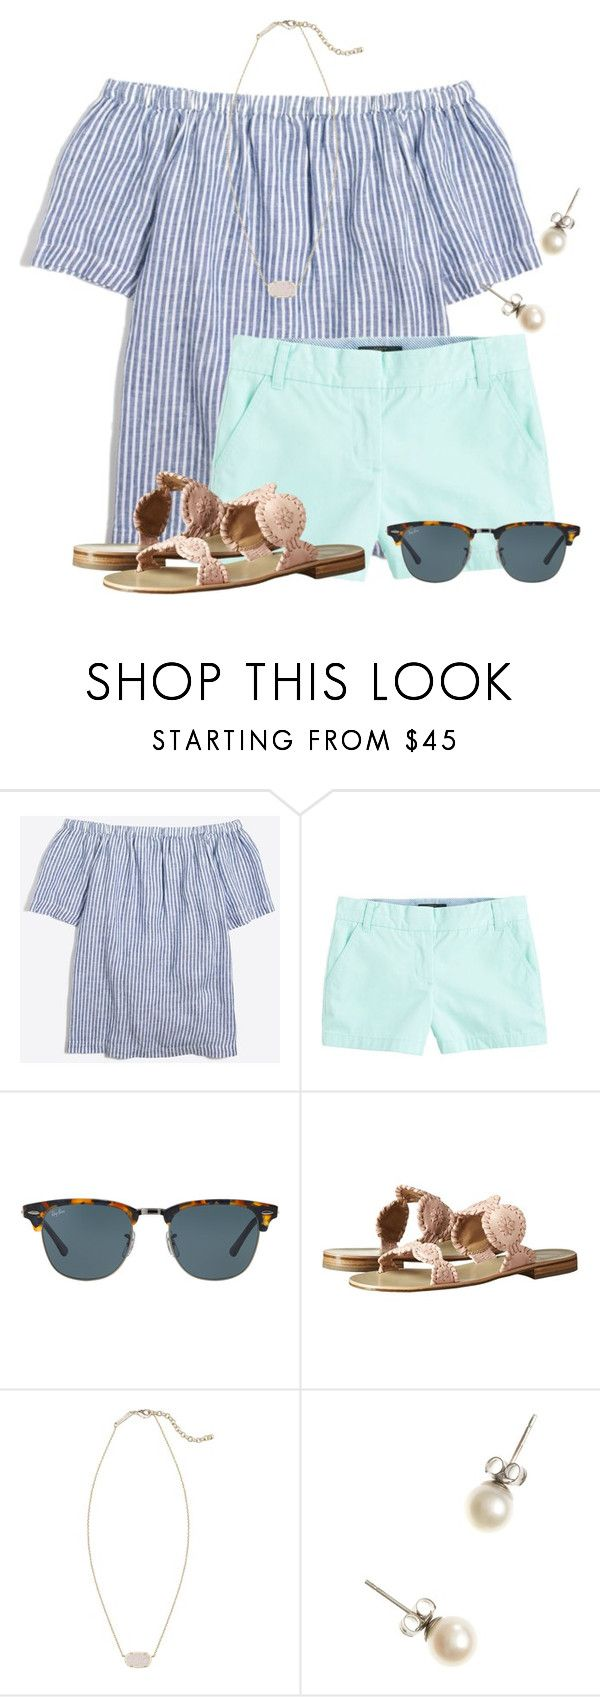 """TODAY IS MY 16th BIRTHDAY!❤"" by flroasburn ❤ liked on Polyvore featuring J.Crew, Ray-Ban, Jack Rogers and Kendra Scott"